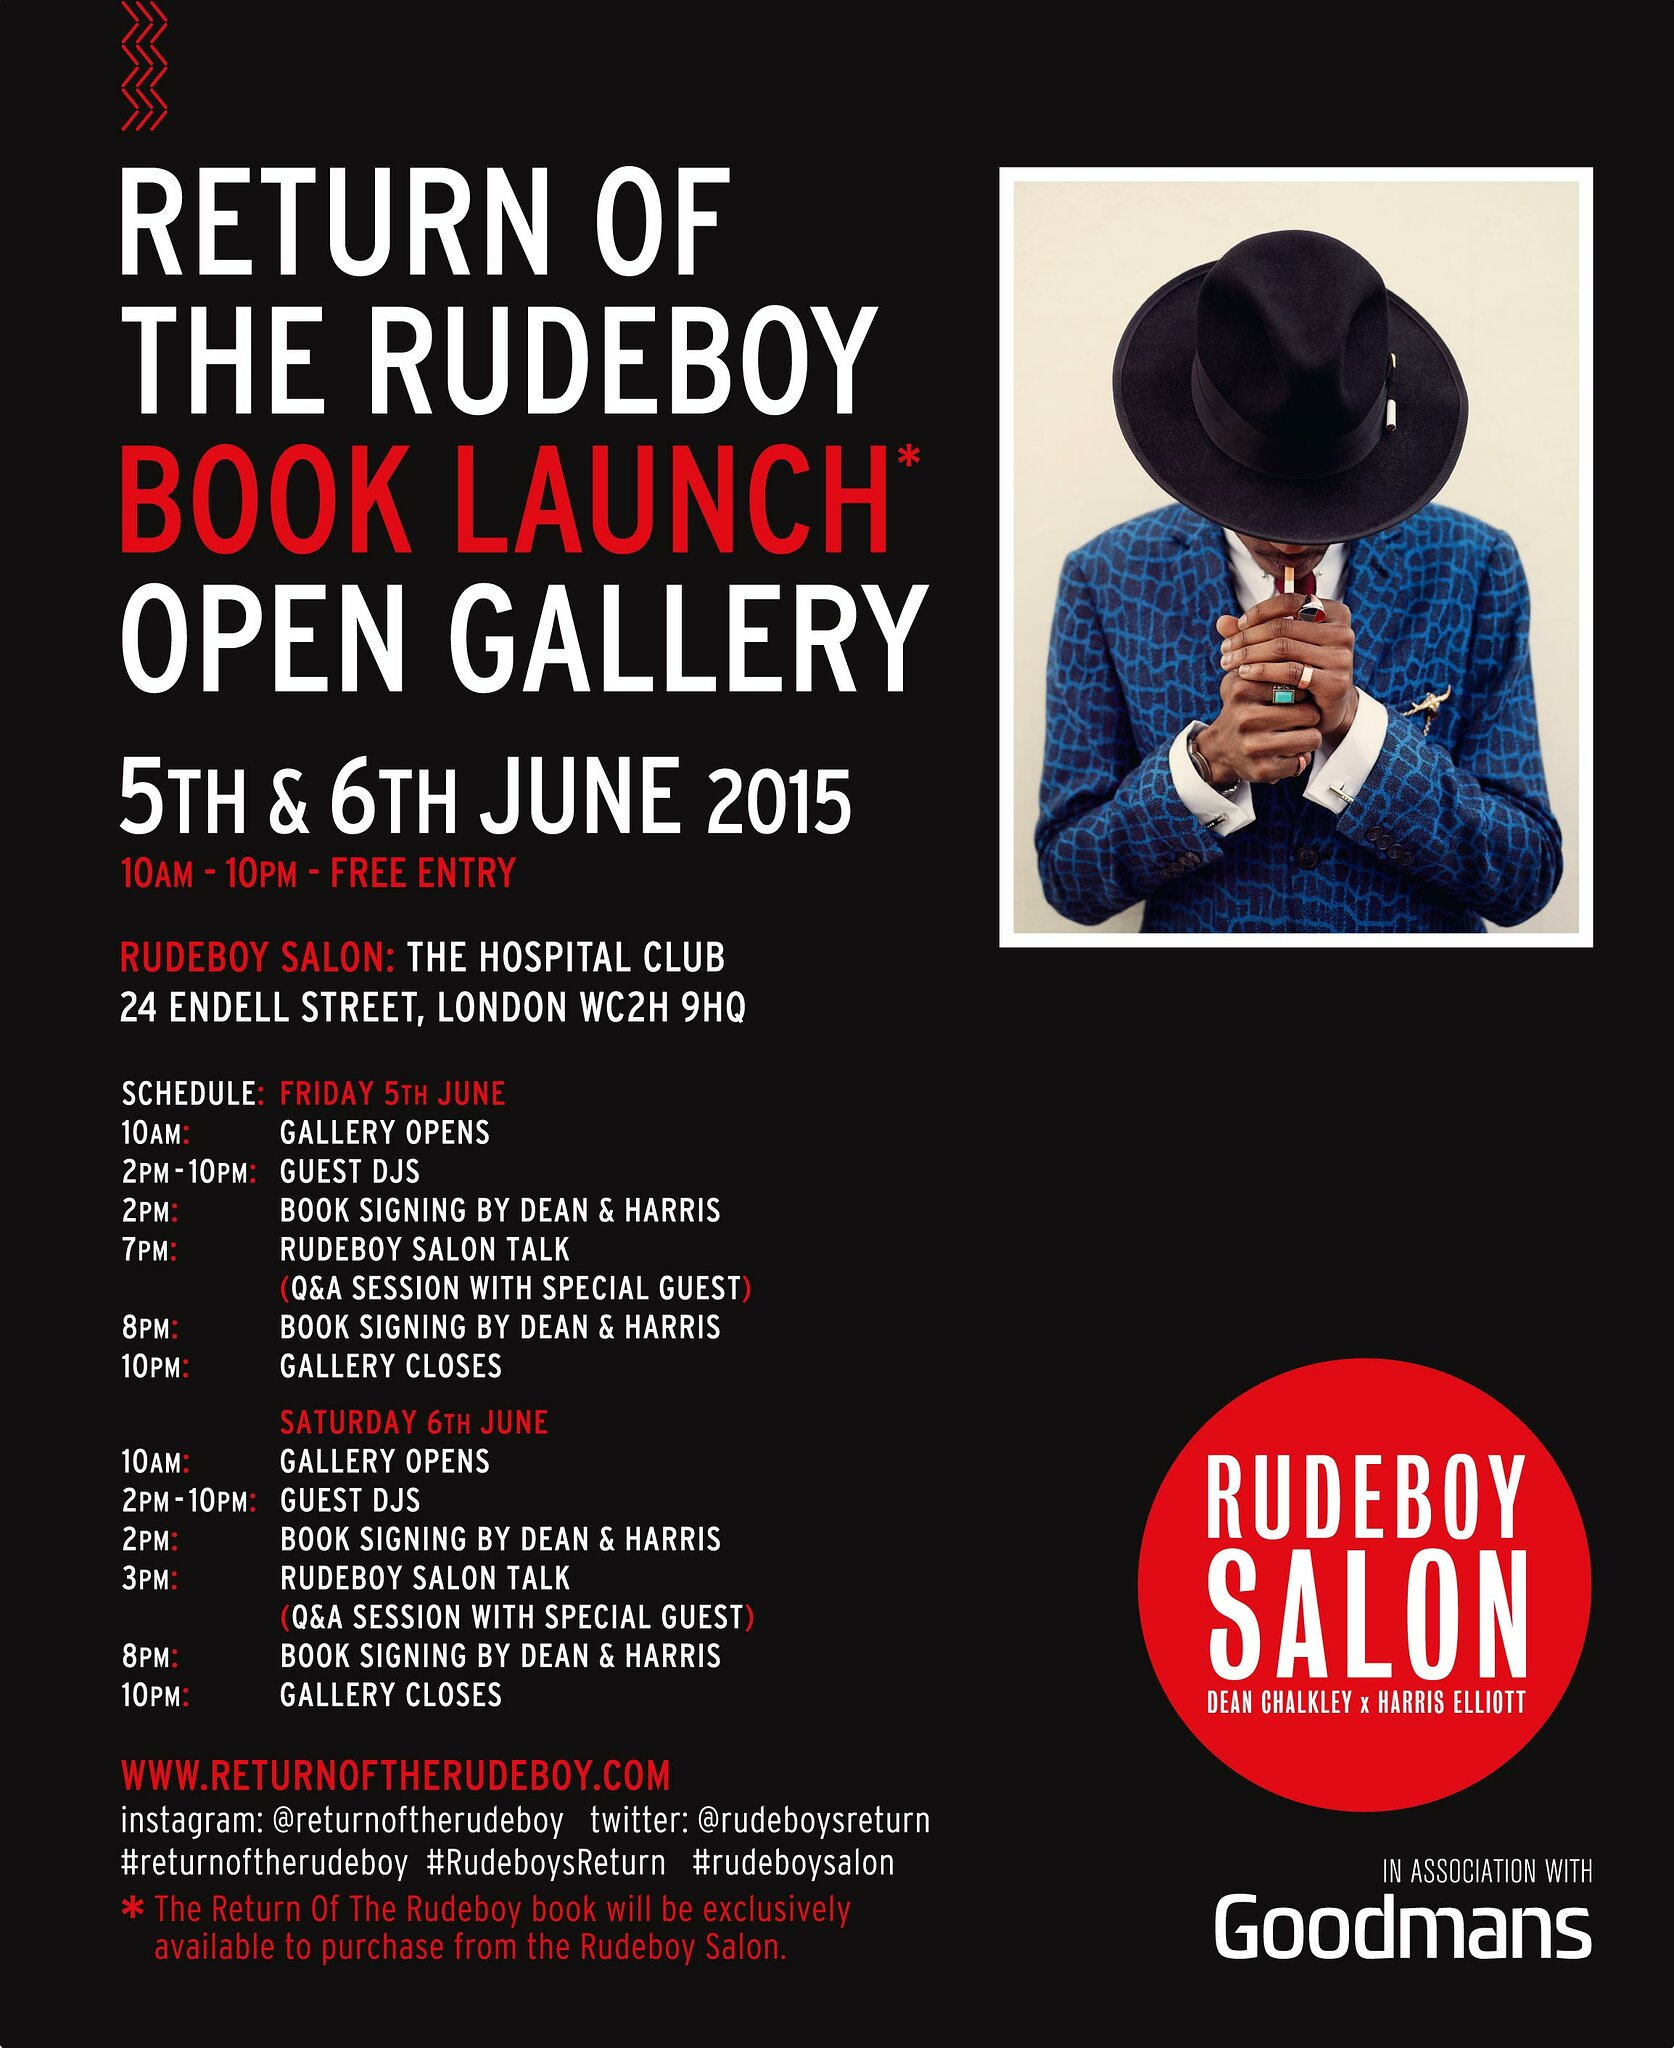 Reudeboy Salon